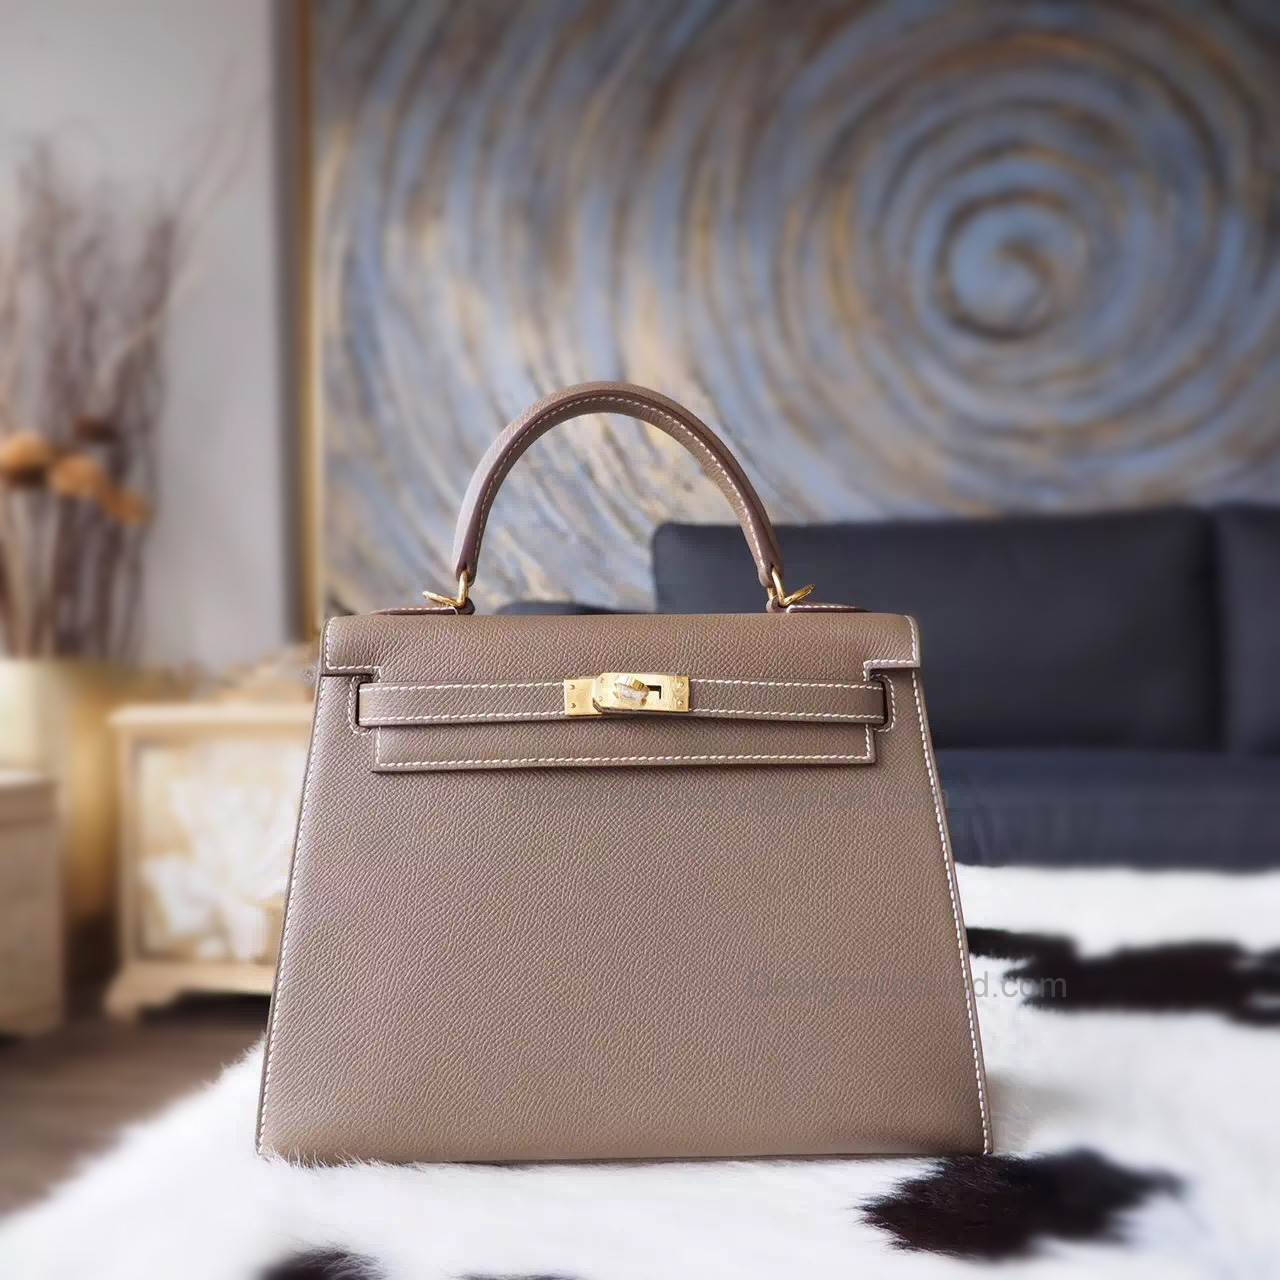 Knock Off Hermes Kelly 25 Handmade Bag in ck18 Etoupe Epsom Calfskin GHW